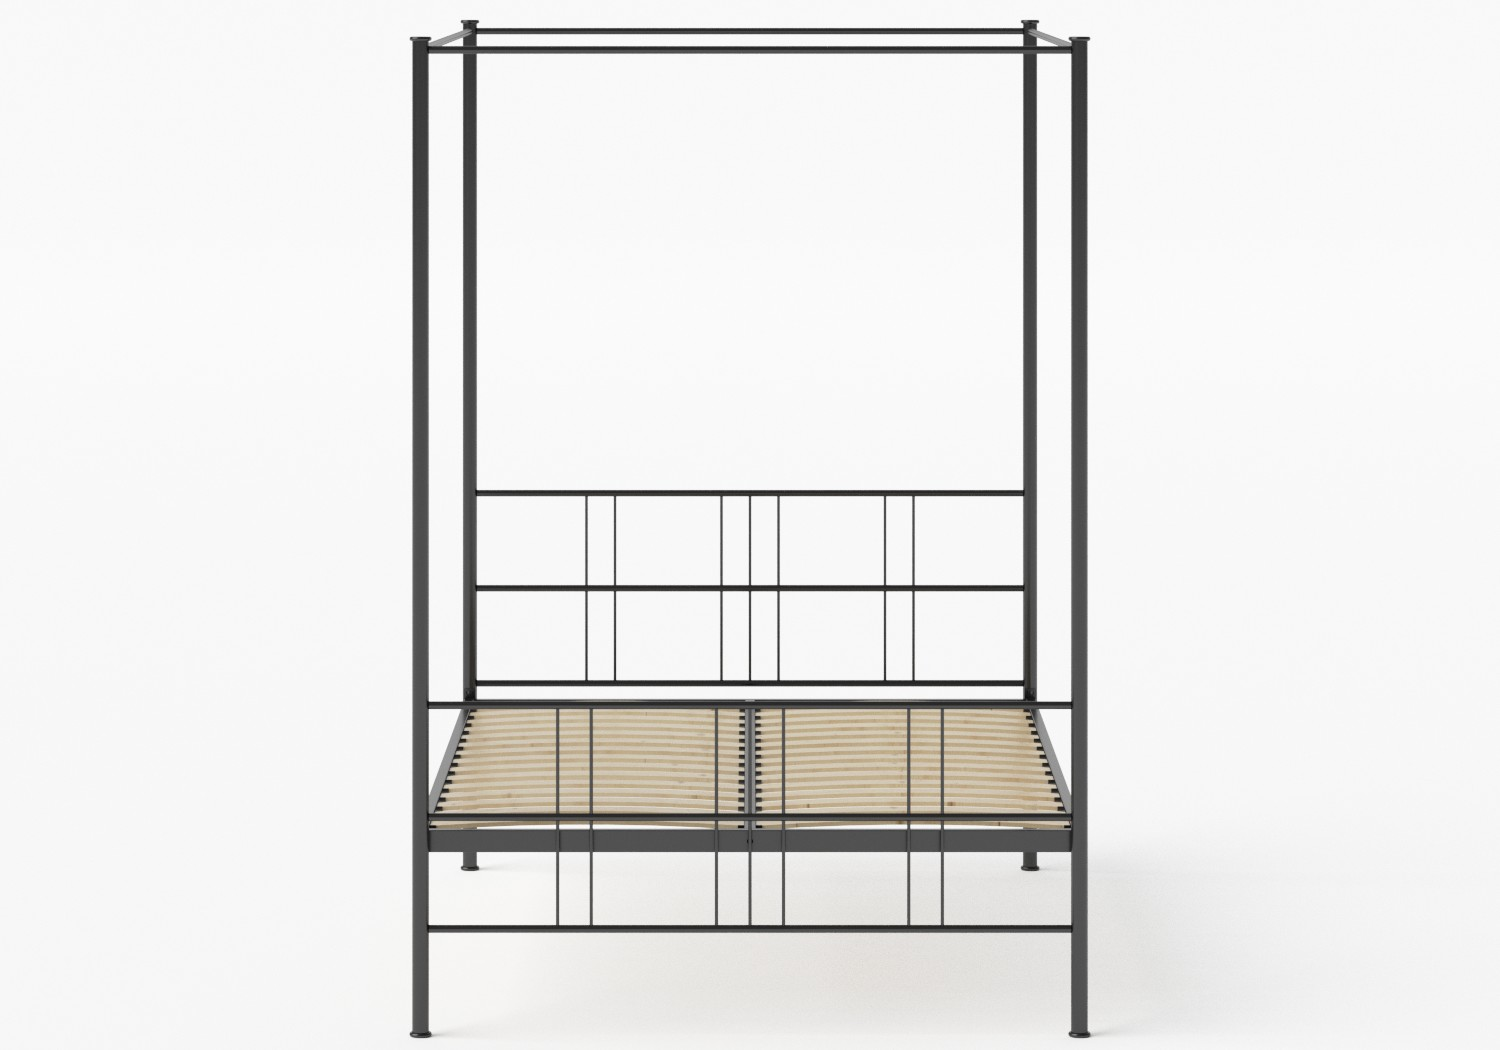 Toulon Iron/Metal Bed in Satin Black shown with slatted frame